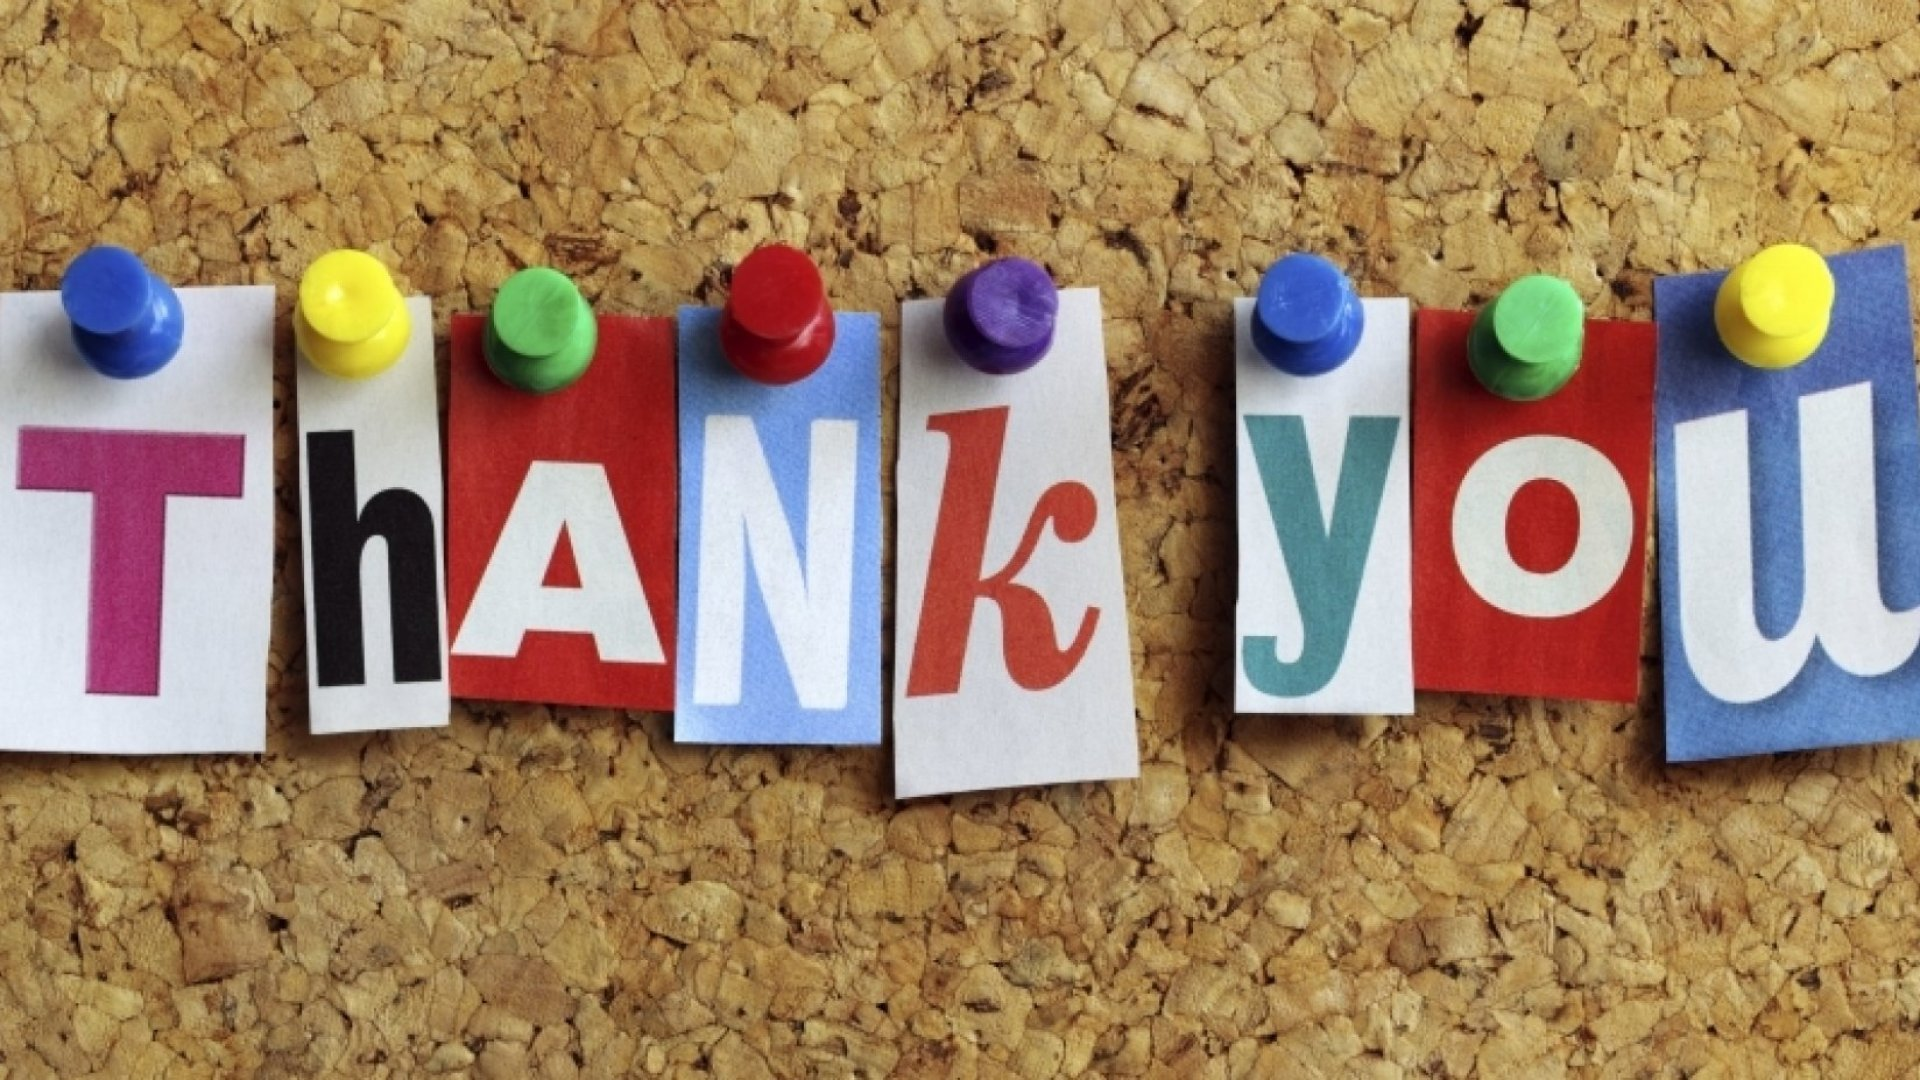 4 Powerful Tips for Showing Your Gratitude by Giving Back